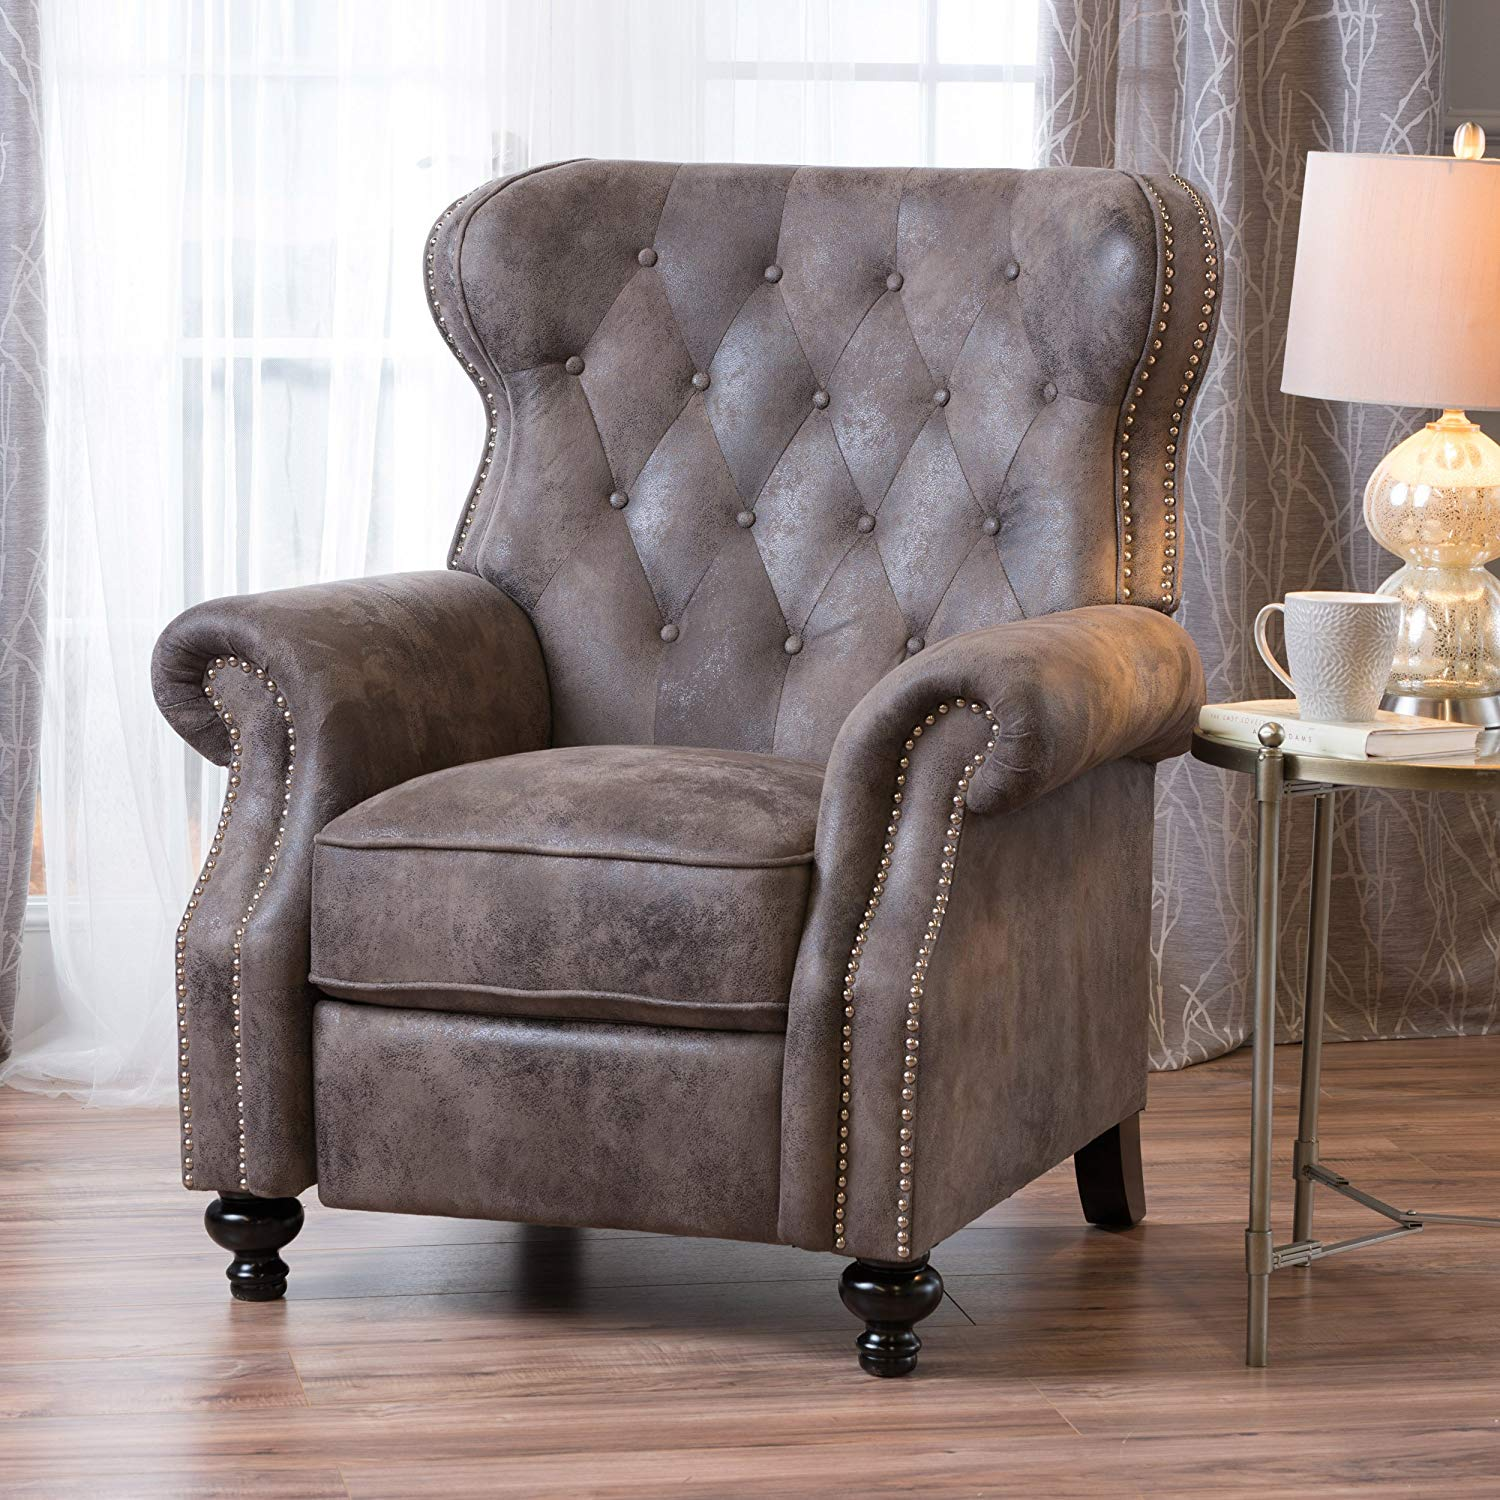 Christopher Knight Home 300661 Waldo Tufted Wingback Recliner Chair(Warm Stone), 35.83 x 39.76 x 41.34,